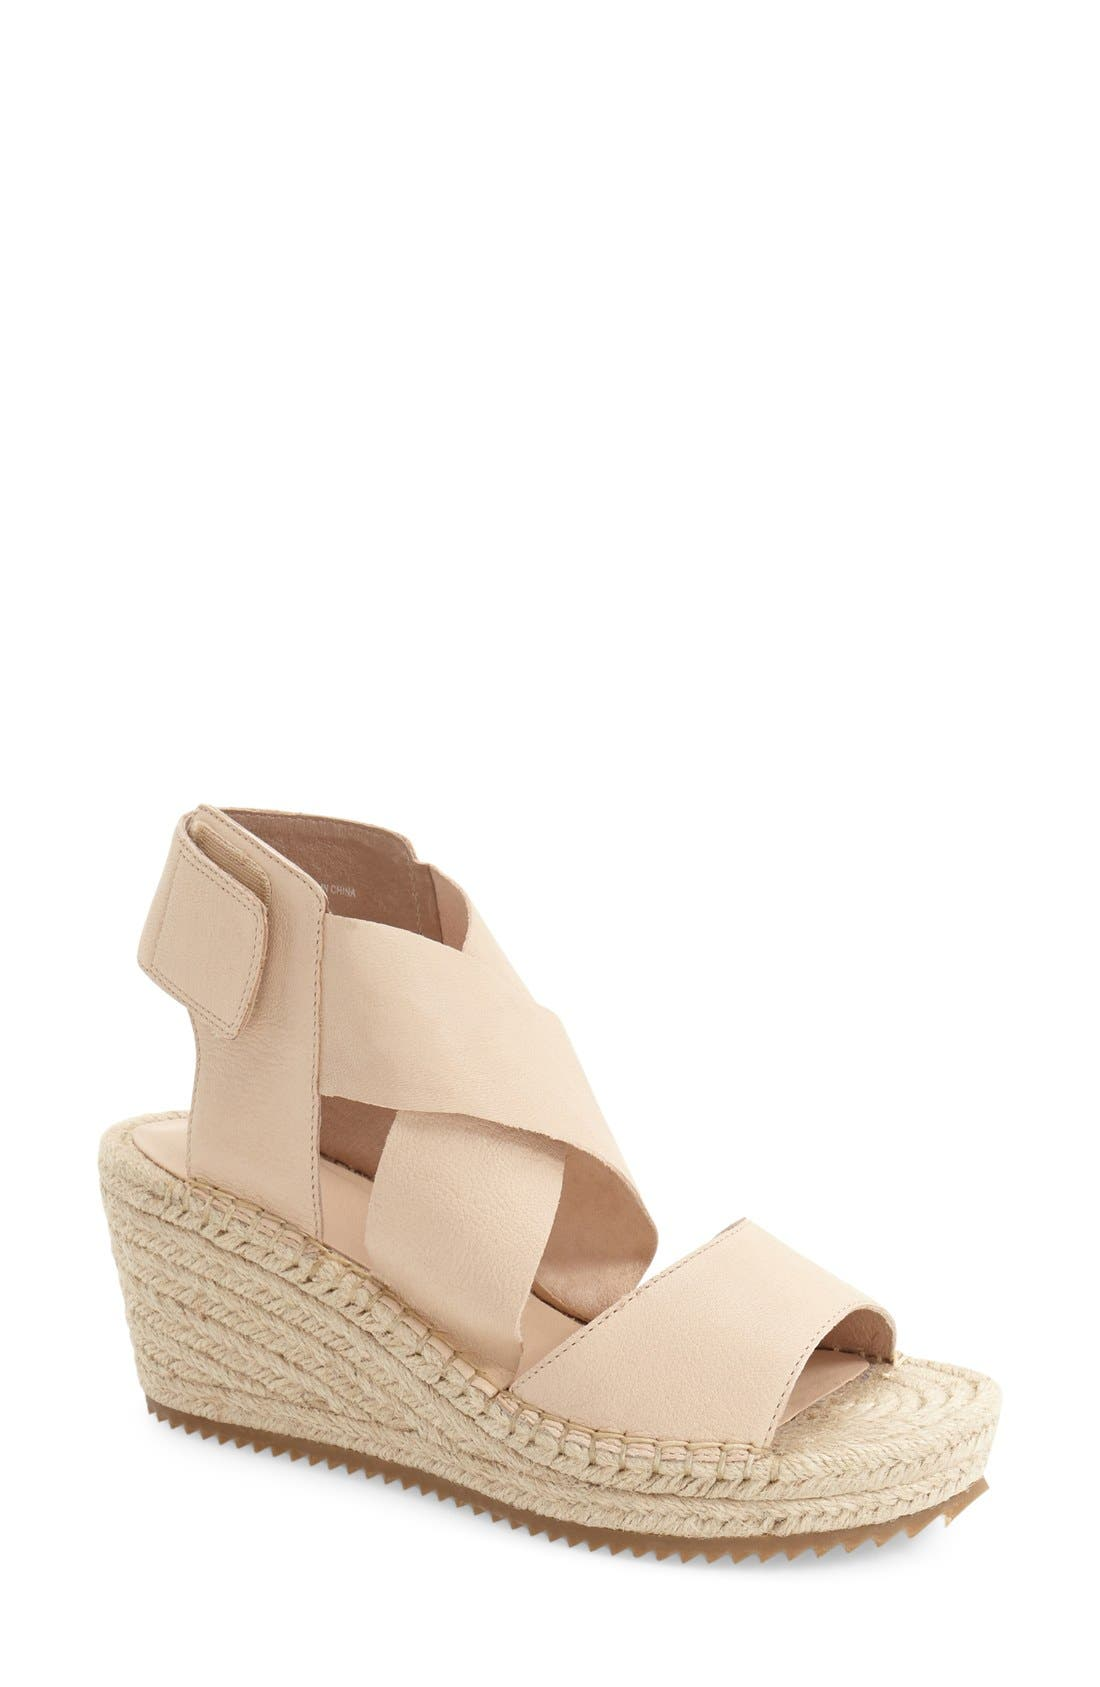 Eileen Fisher 'Willow' Espadrille Wedge Sandal (Women)